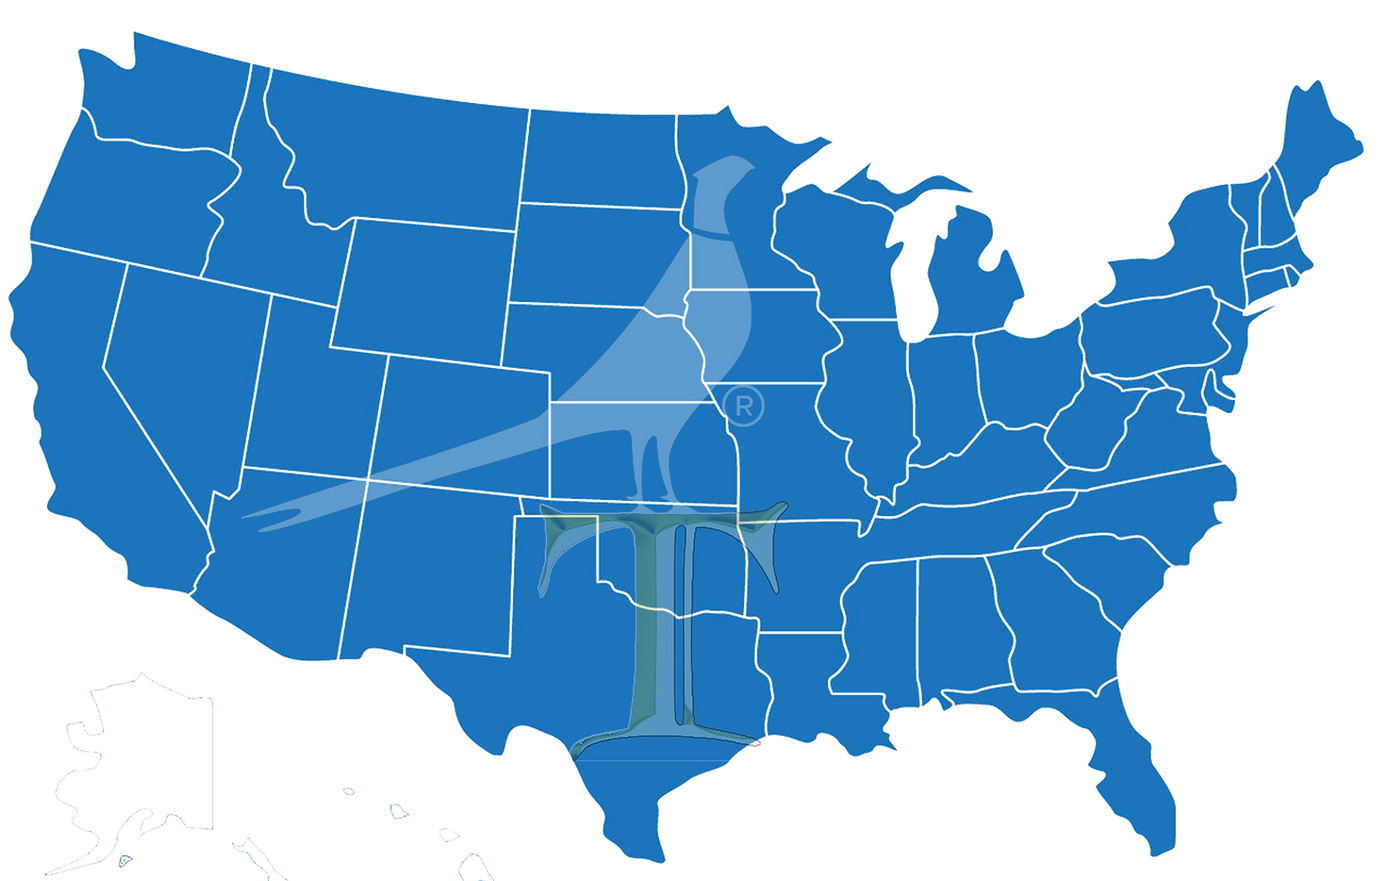 toubl-us-map.png